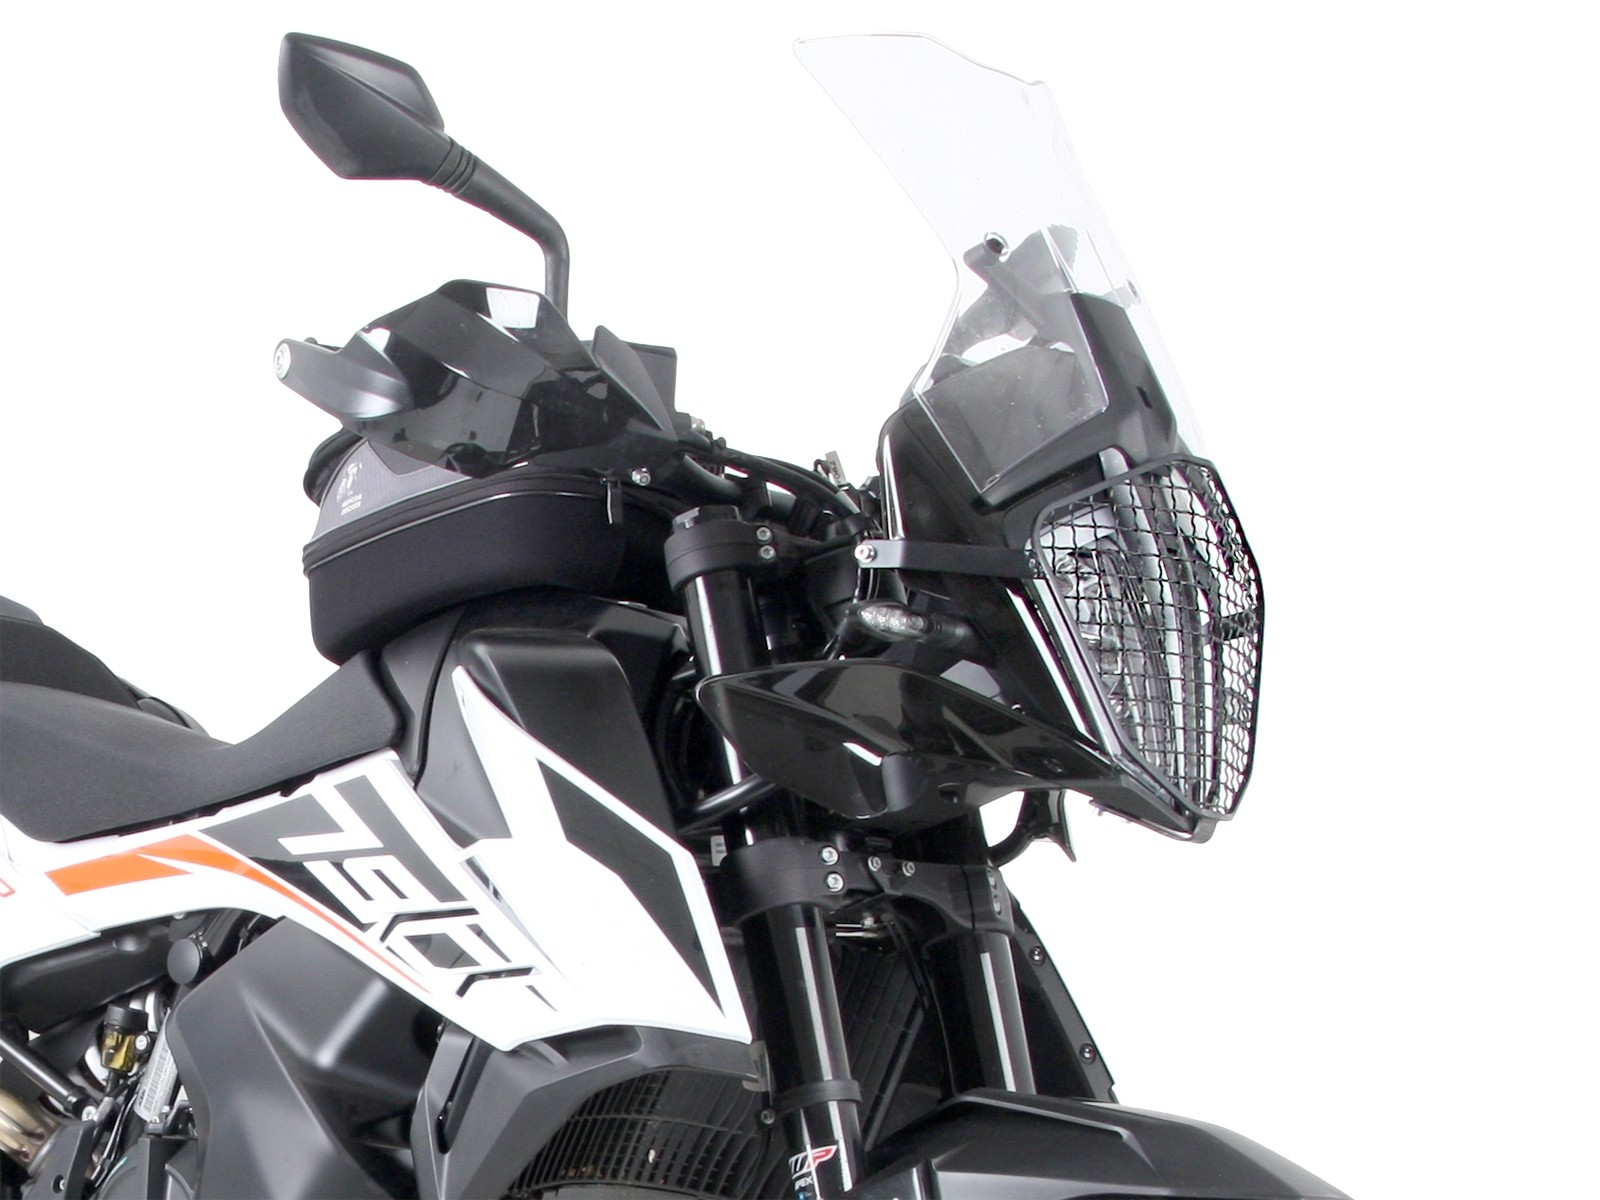 Hepco and Becker HEADLIGHT GRILL FOR KTM 790 Adventure /R